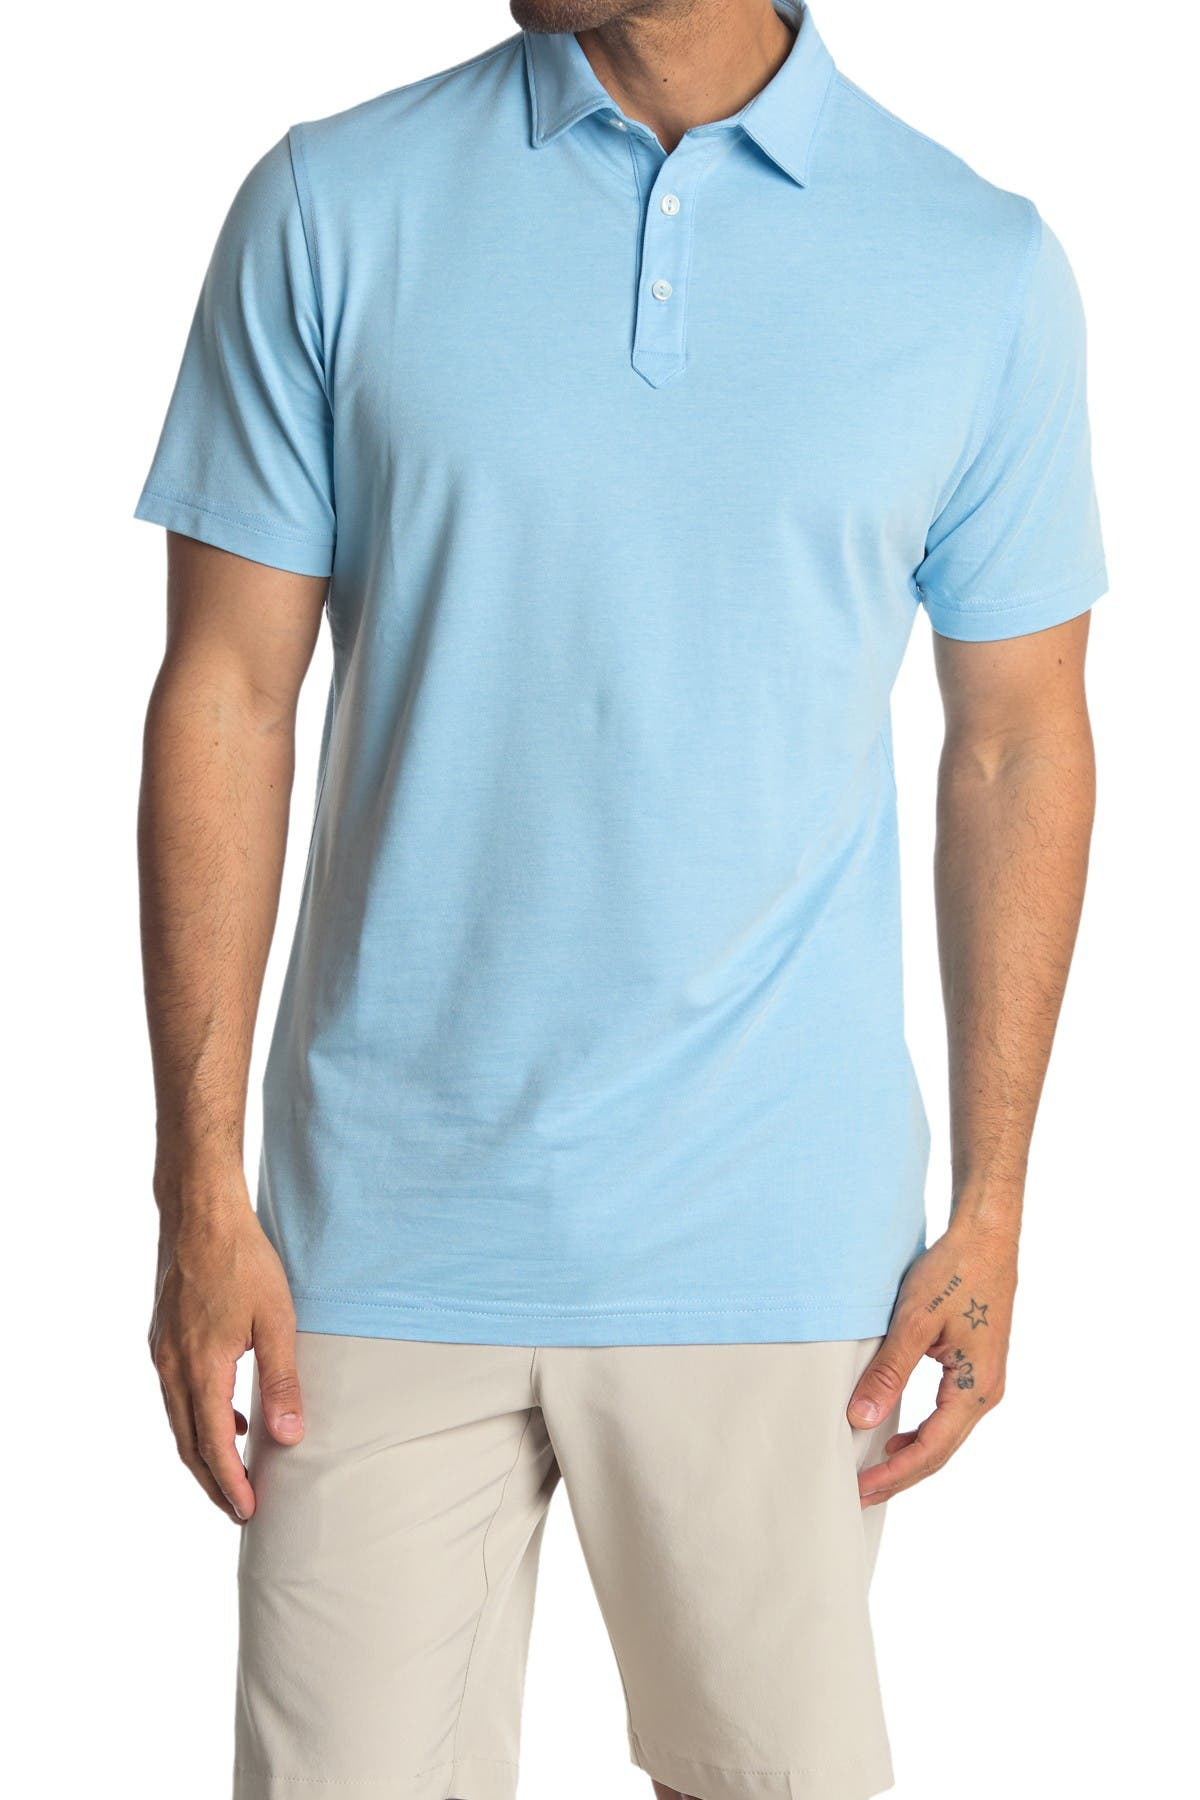 Image of Peter Millar Ace Pique Polo Shirt